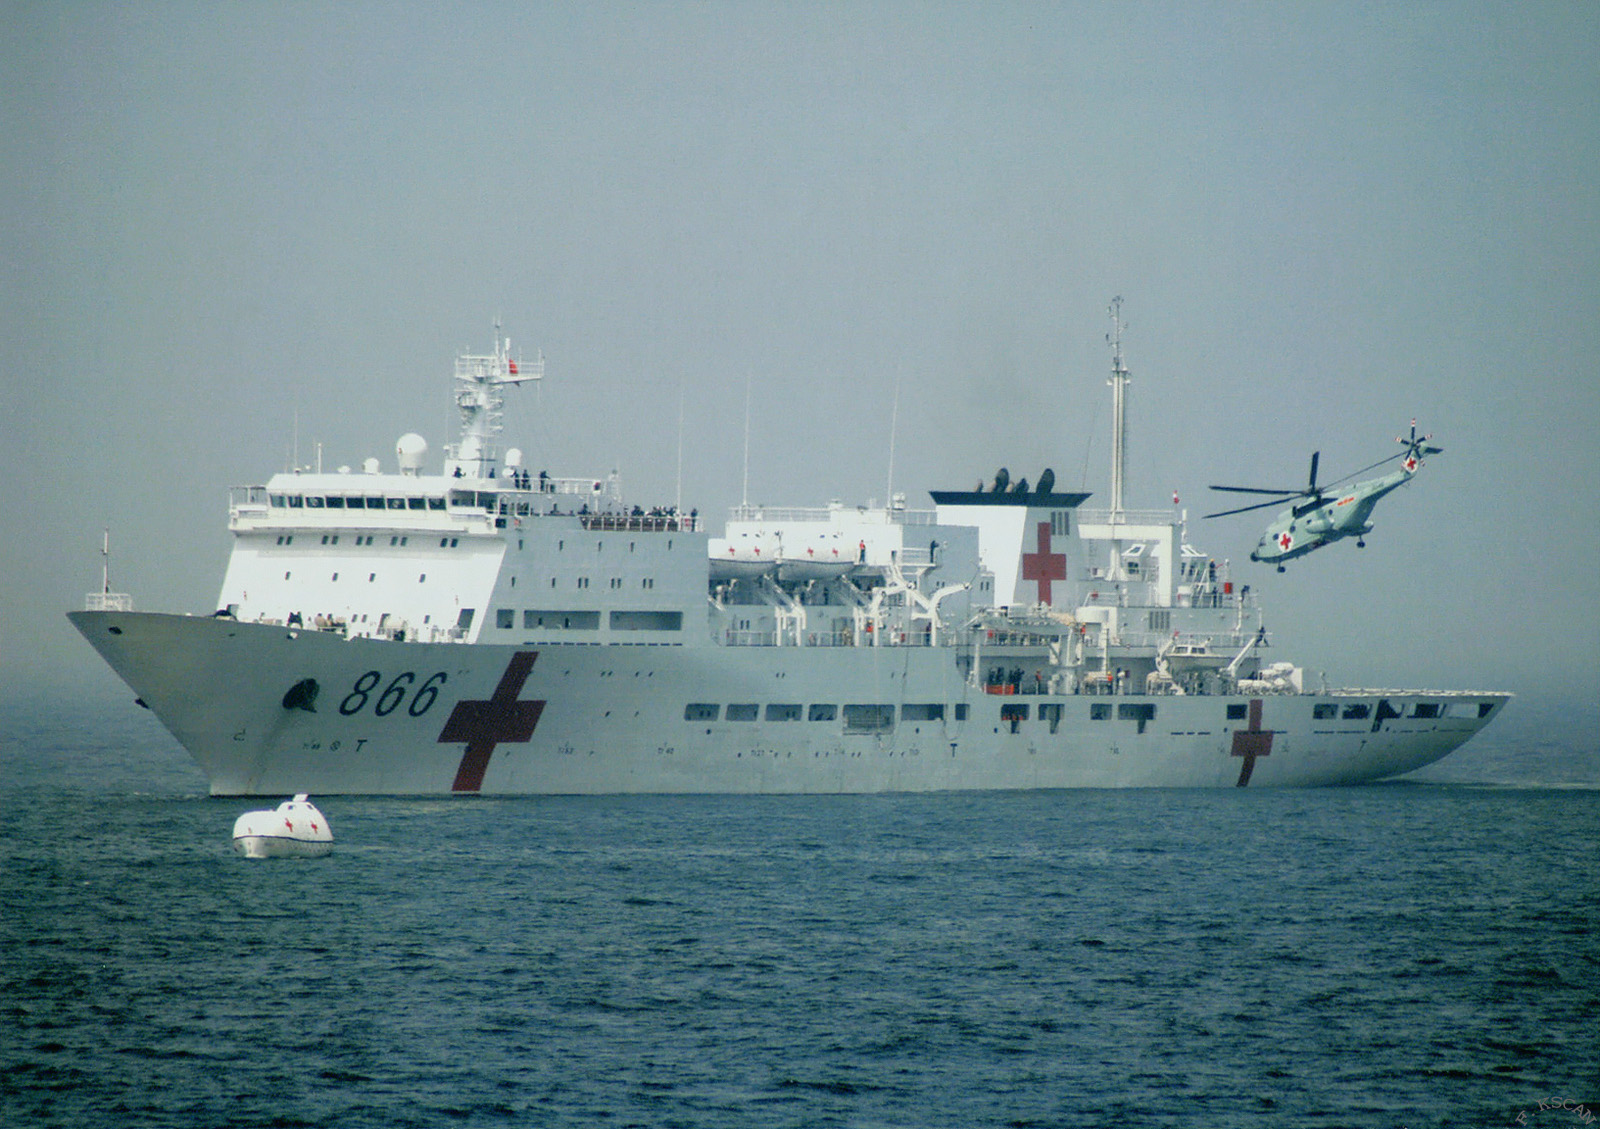 Ems solutions international marca registrada the chinese navy the chinese navy hospital ship peace ark hospital ship 866 daishando video stopboris Image collections